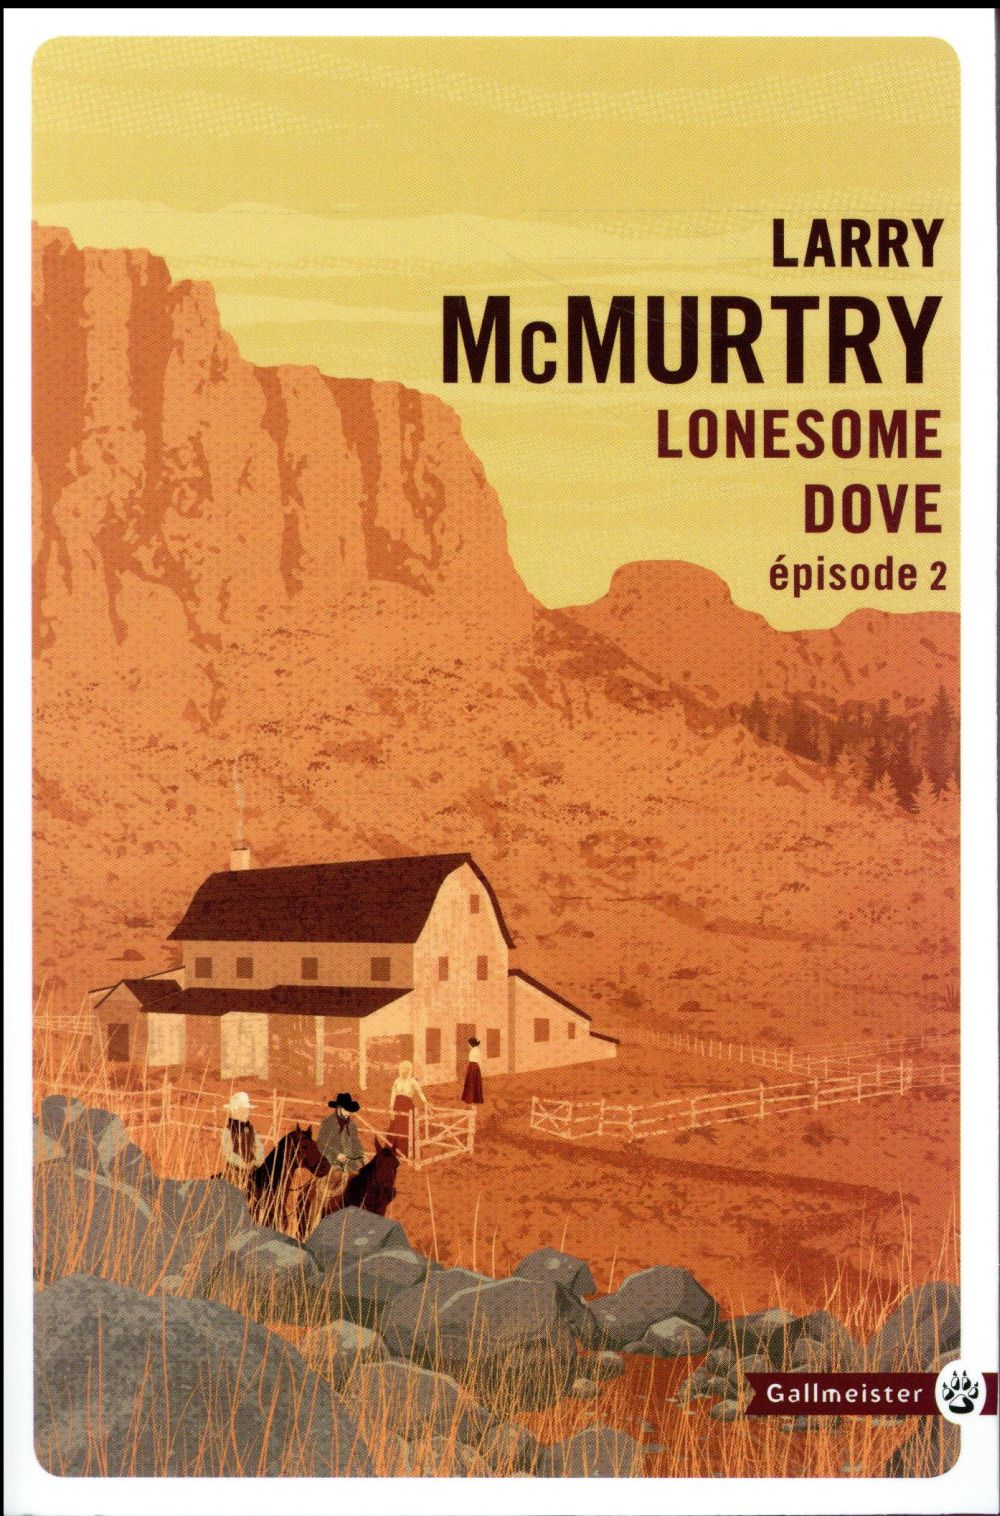 LONESOME DOVE II NED MCMURTRY LARRY GALLMEISTER